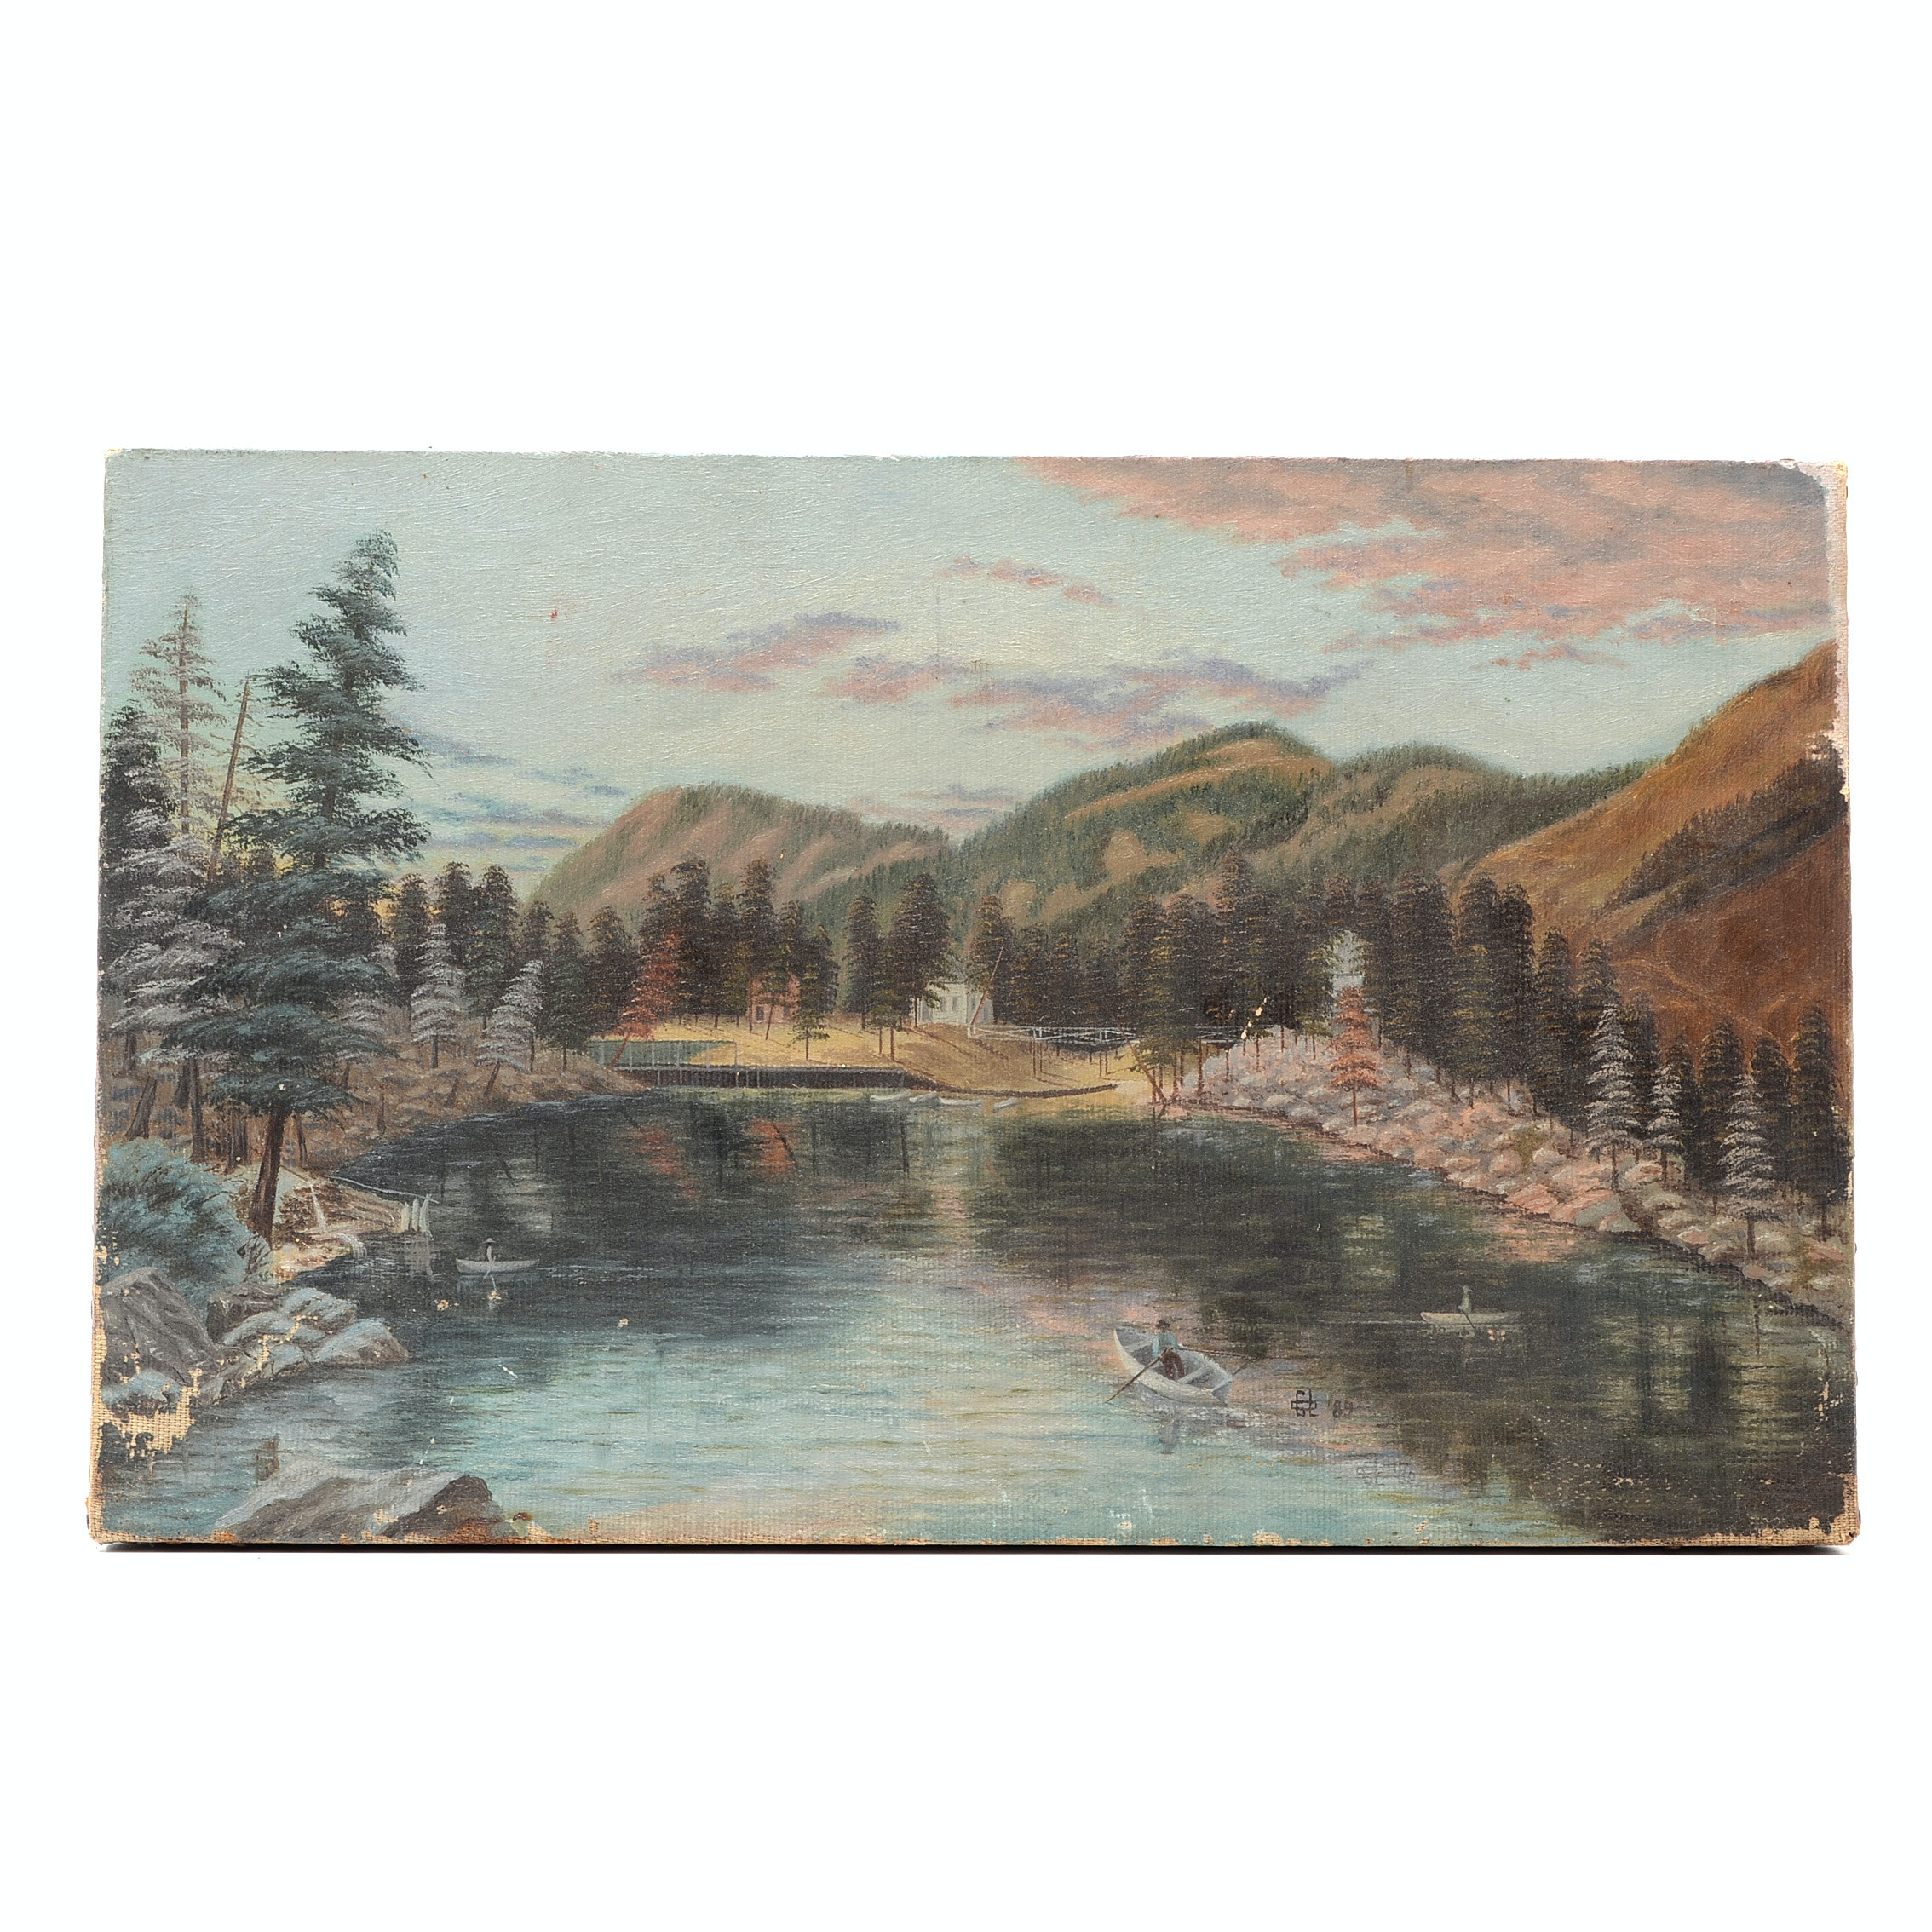 19th-Century Oil Painting on Canvas Colorado Landscape